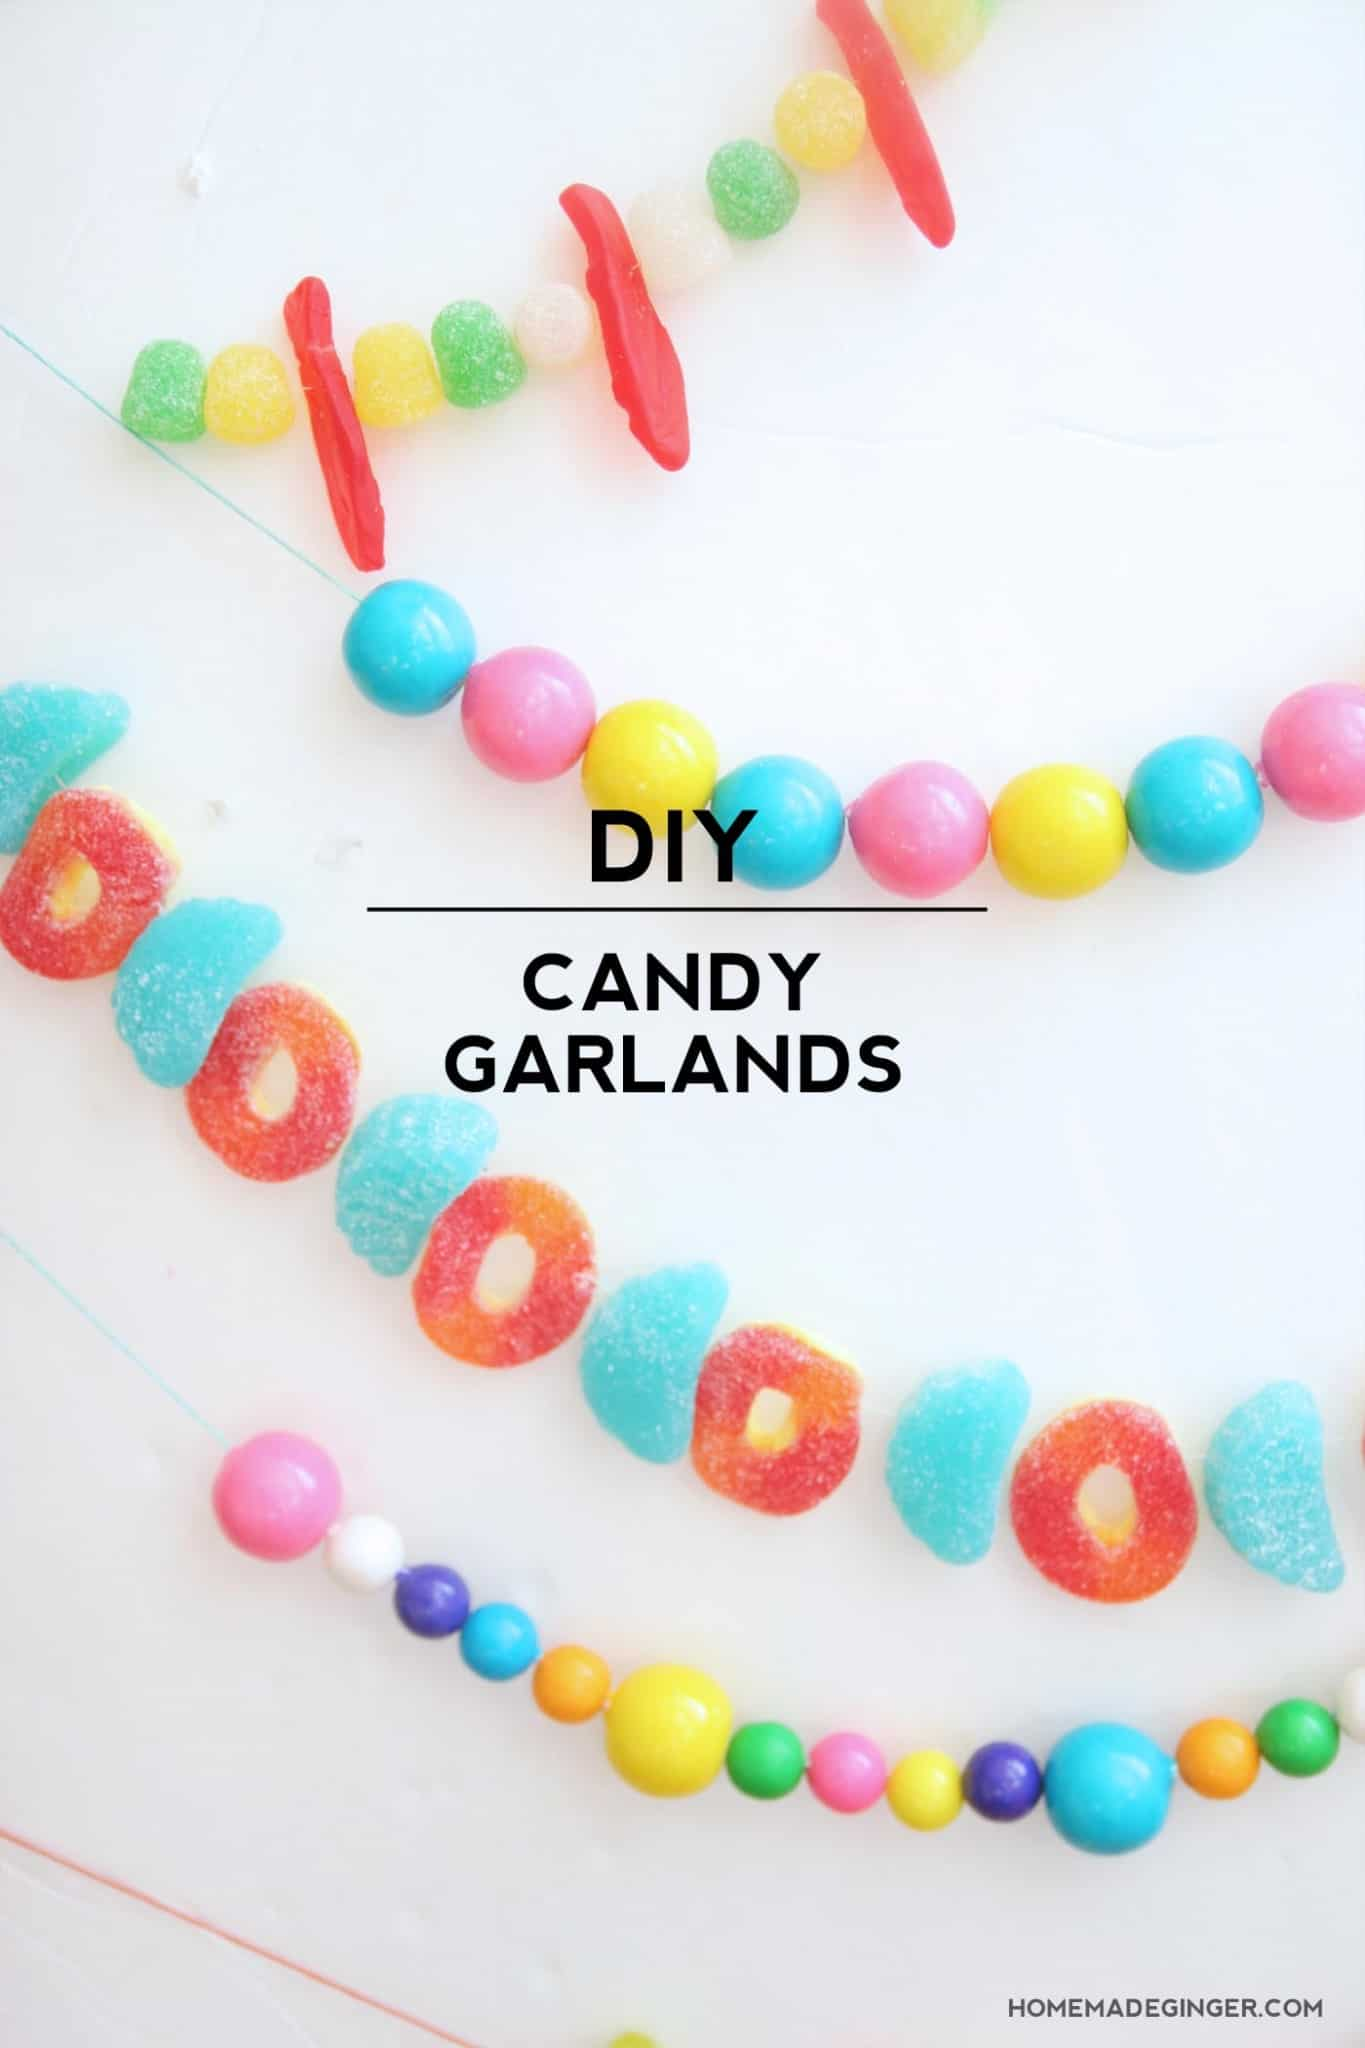 Make a Cute Candy Garland in Three Easy Steps!